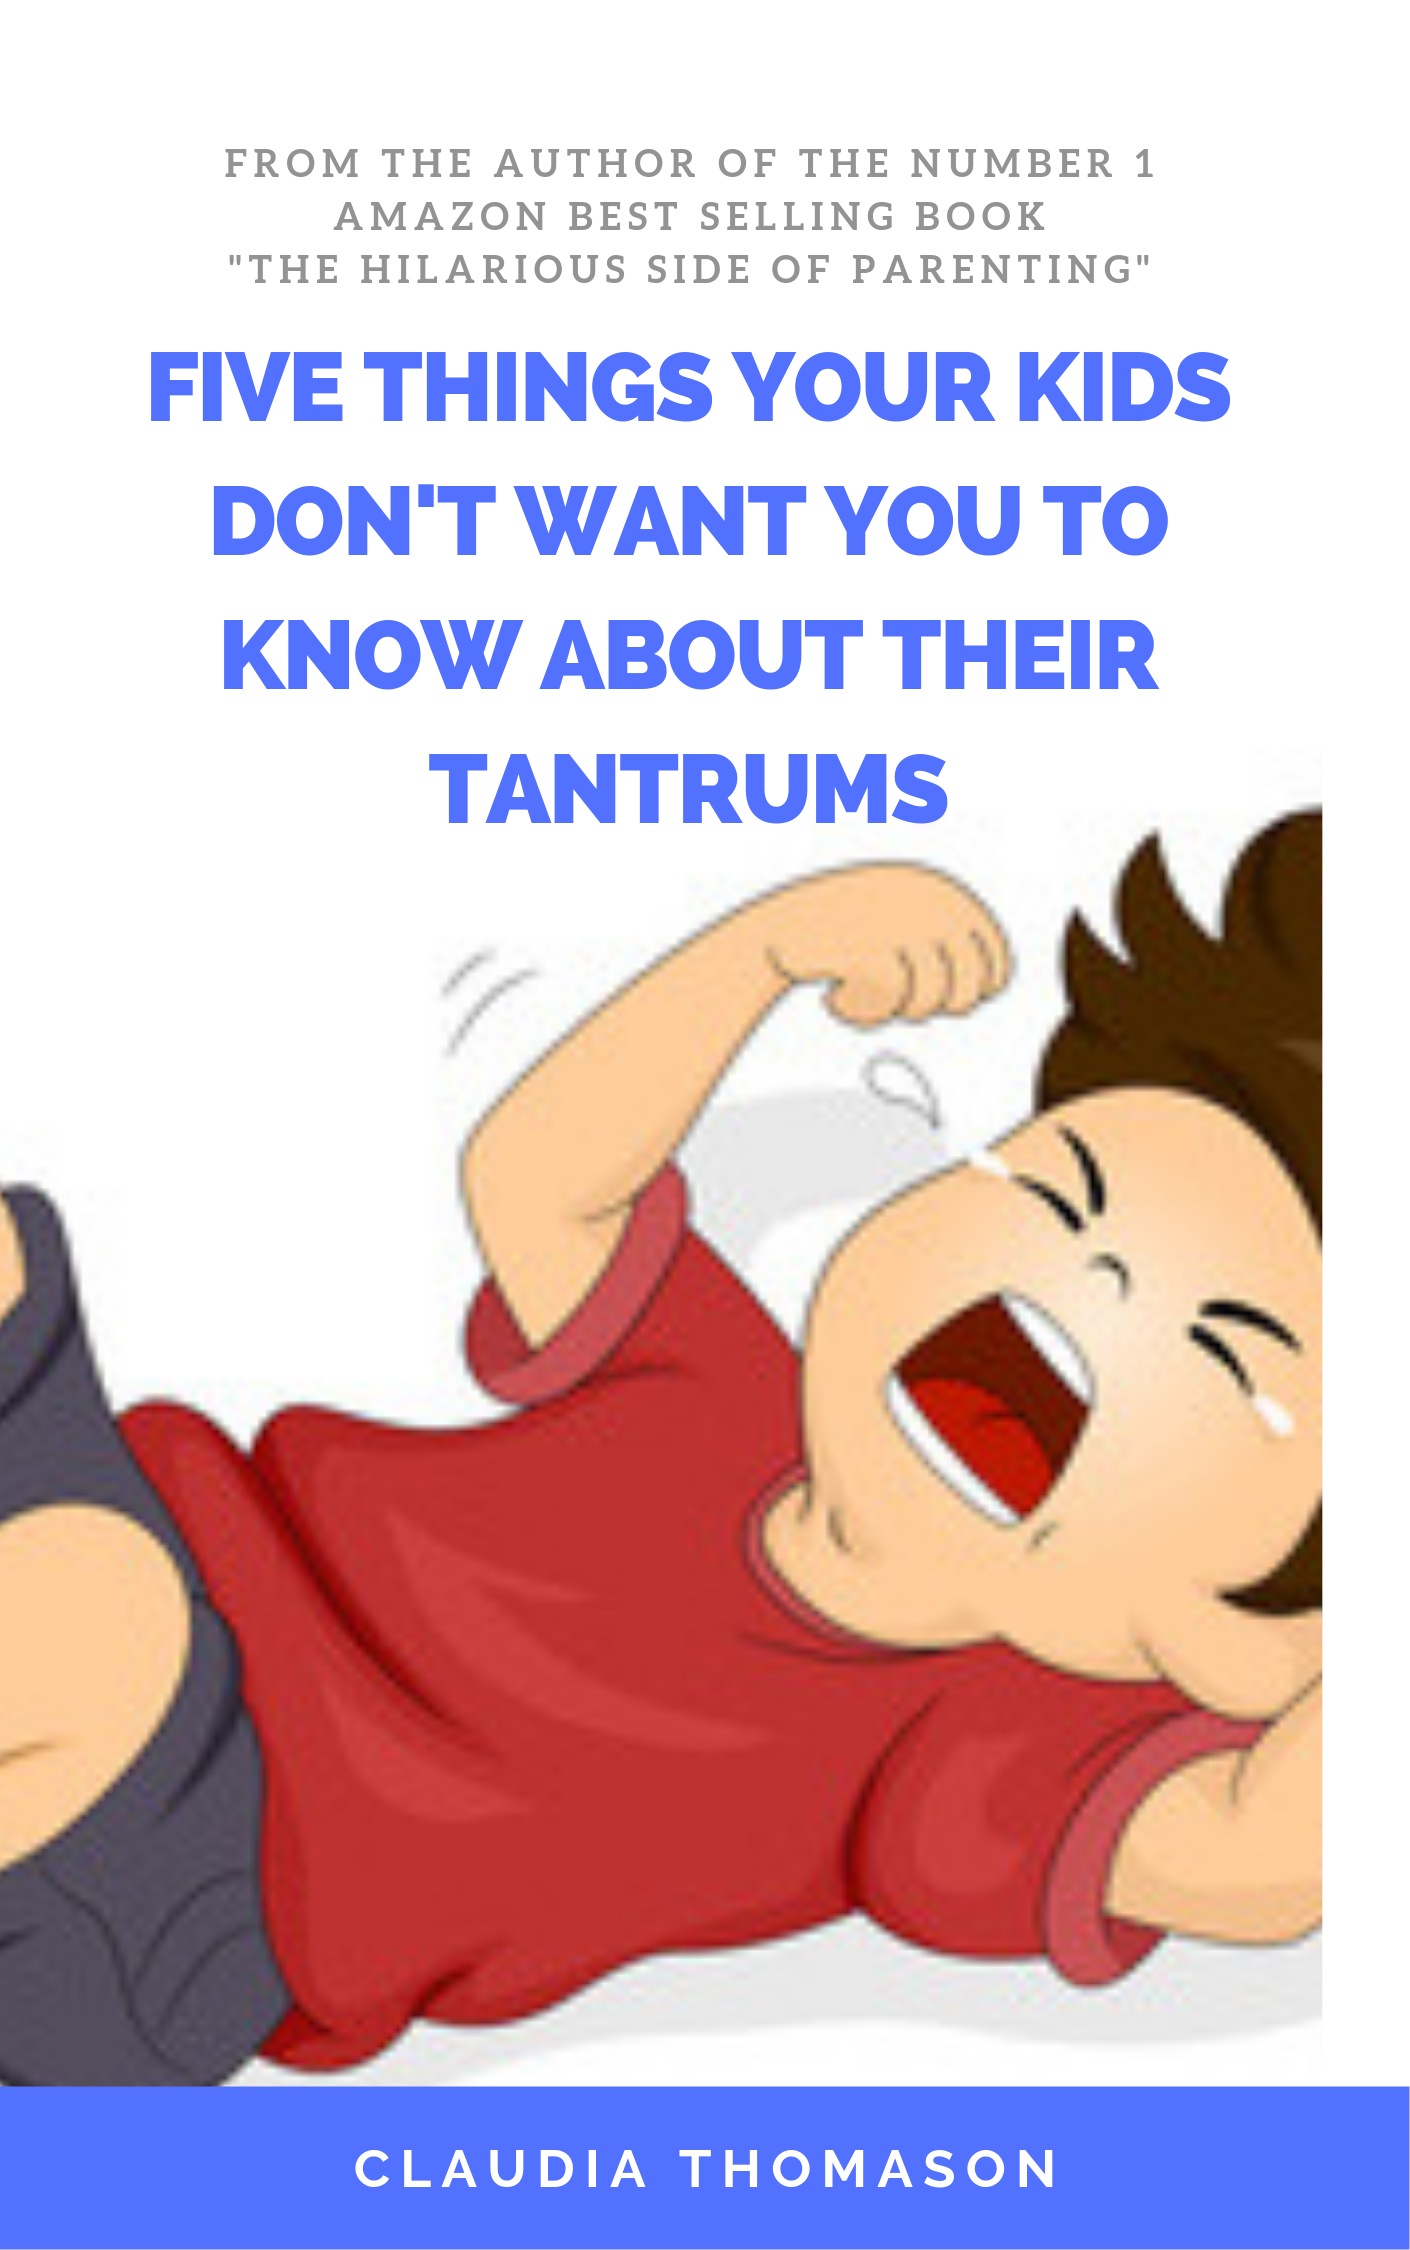 Click here for your tantrum tips